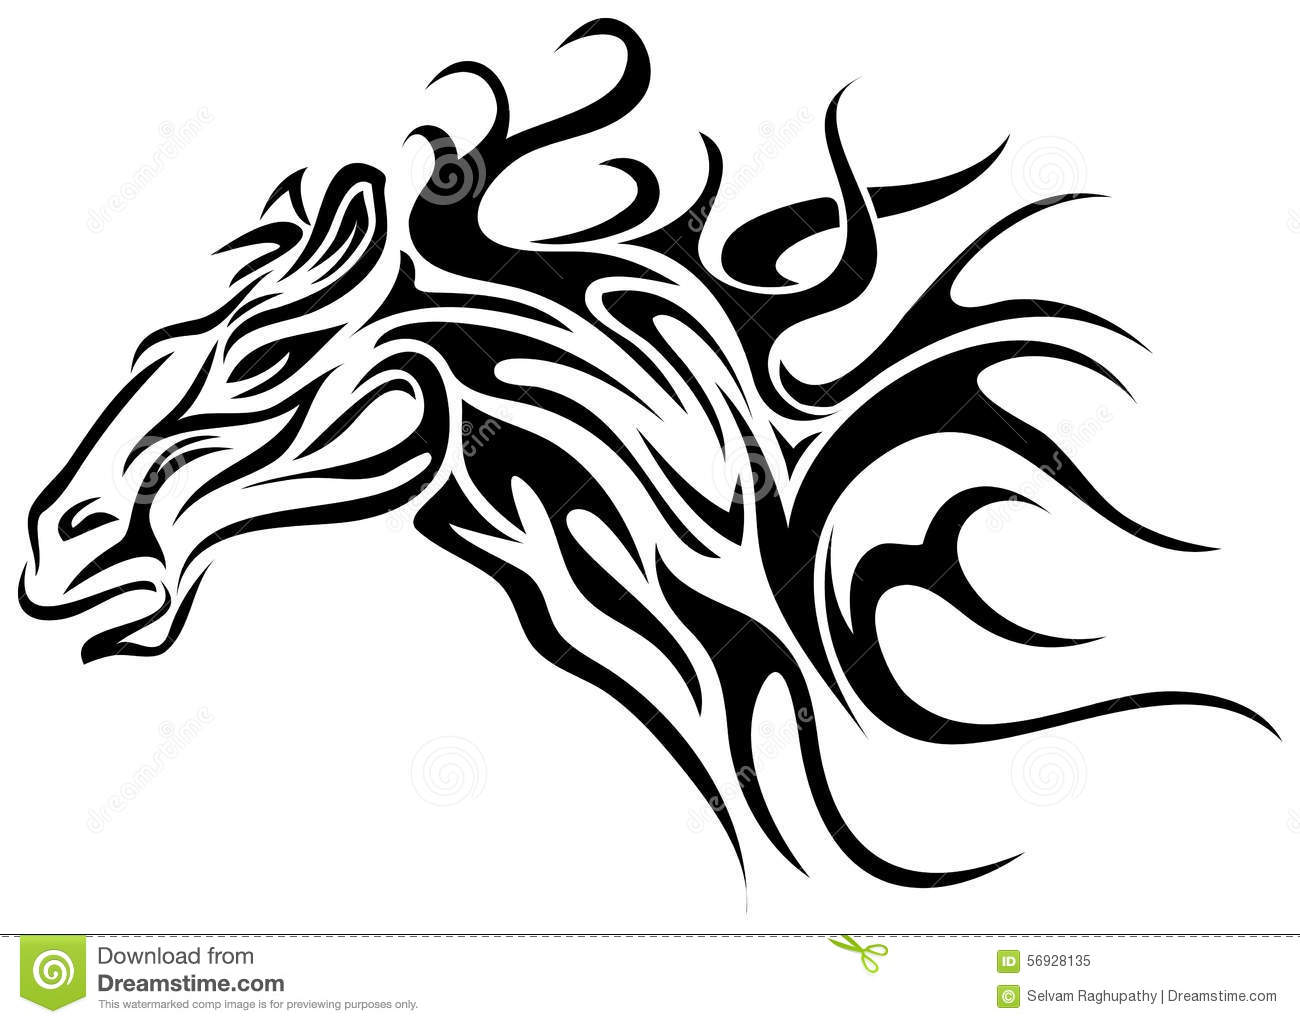 Horse Line Drawing Tattoo : Horse tattoo stock vector image